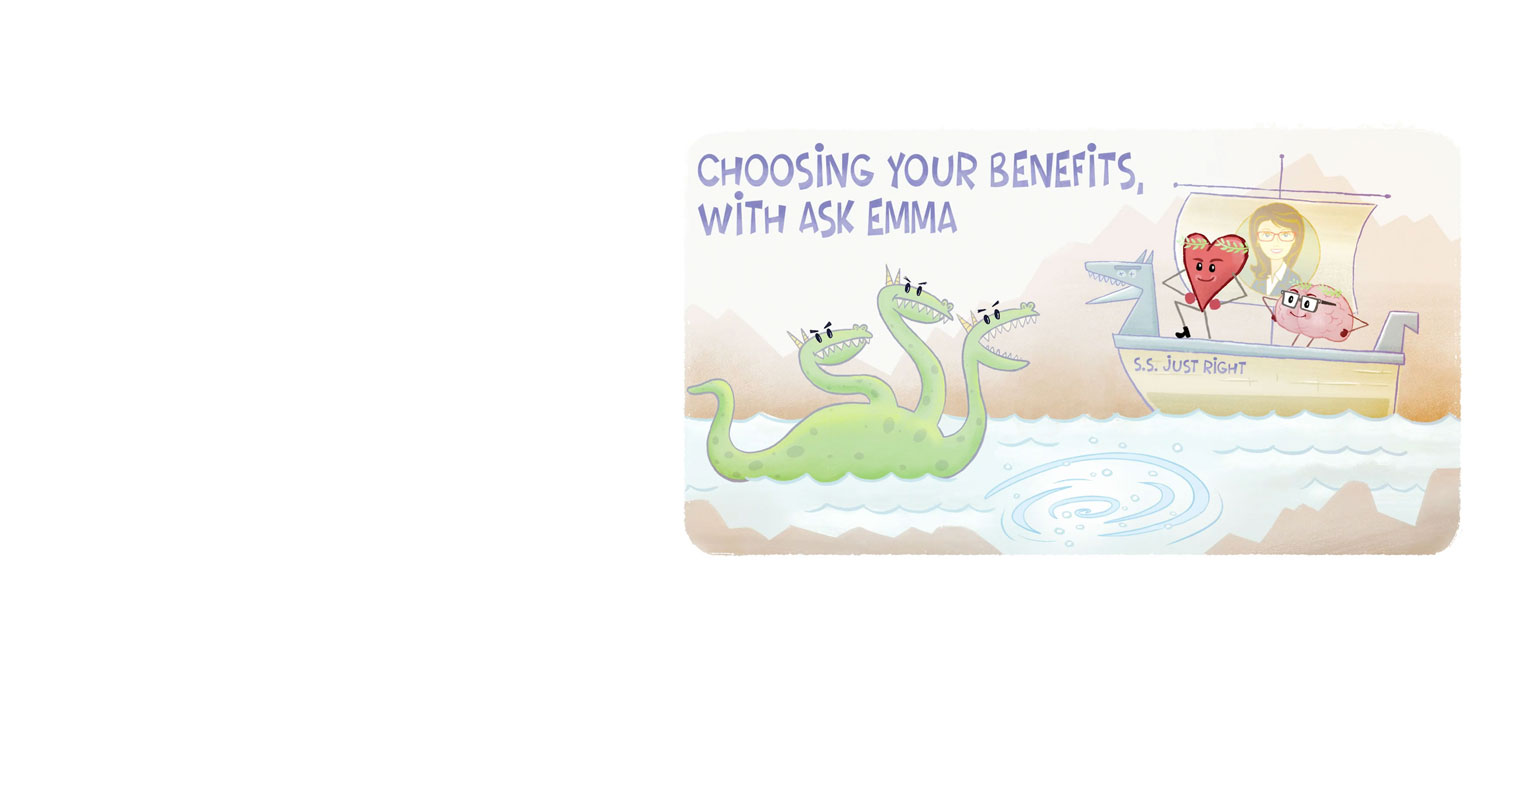 Choosing Your Benefits with Ask Emma